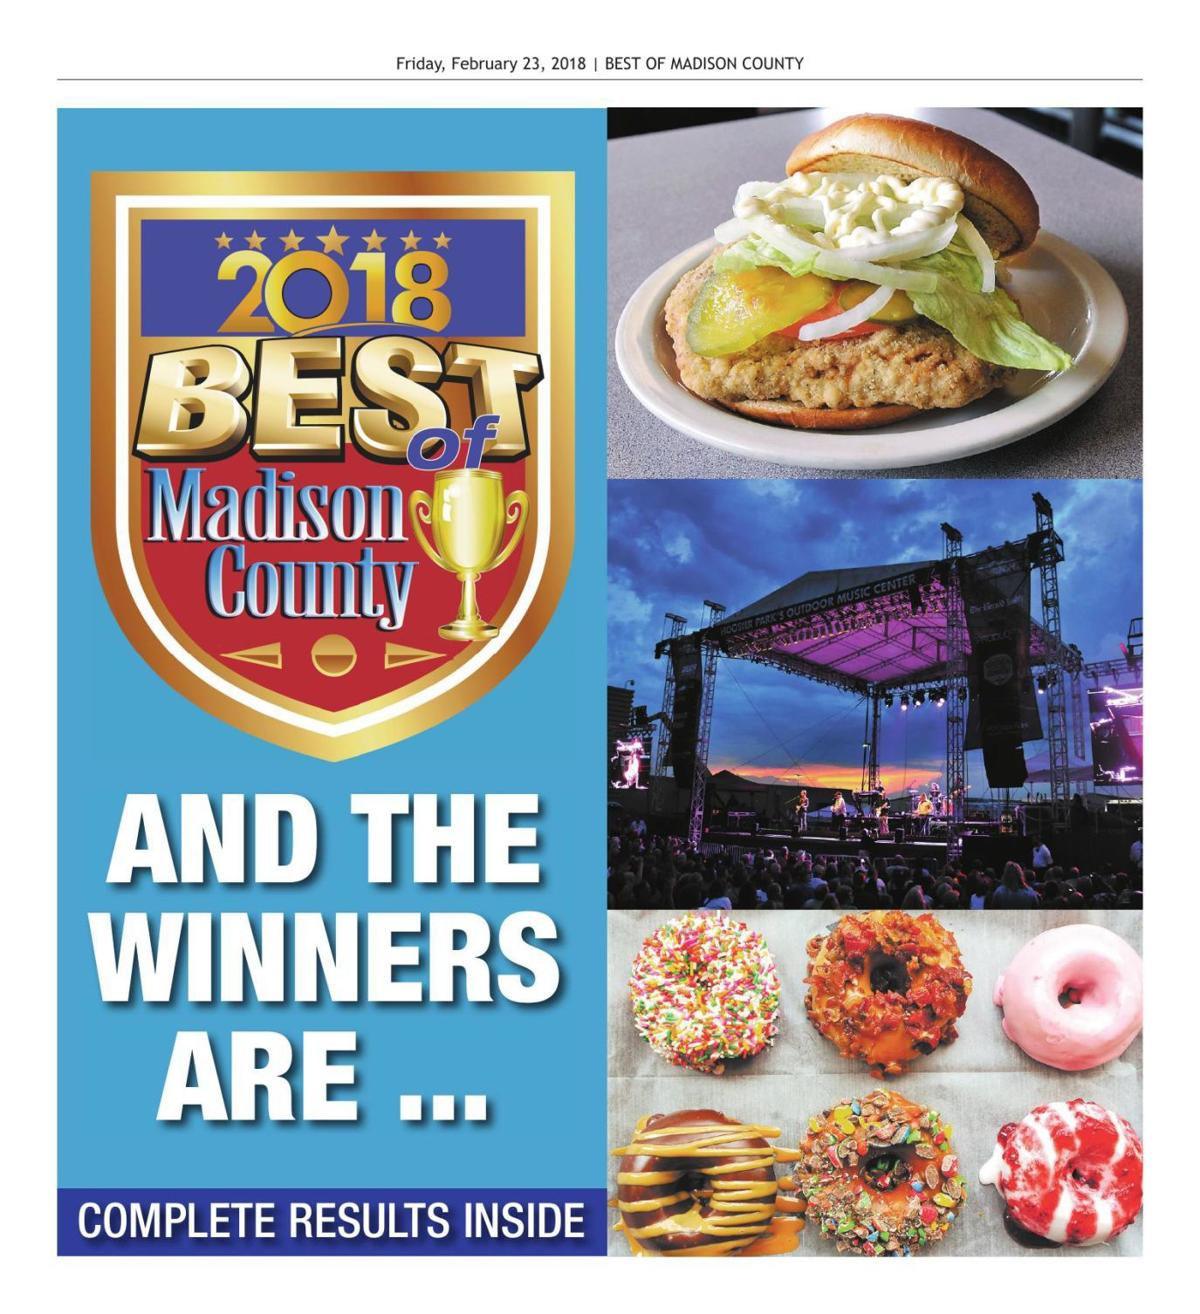 BEST OF MADISON COUNTY: And the winners are ...